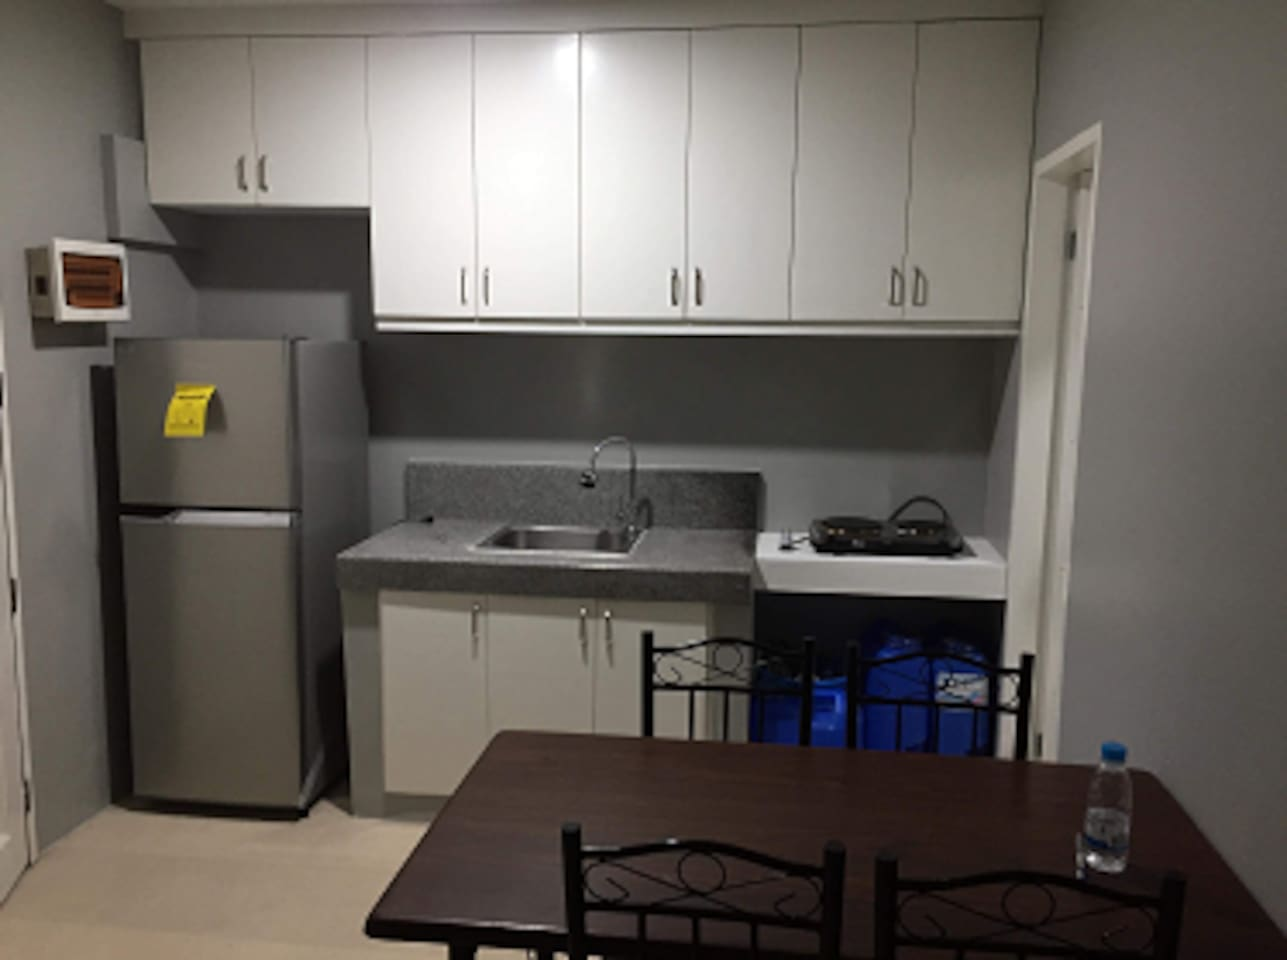 1st floor - Kitchen and Dining with built in cabinets - includes refrigerator, electronic stove